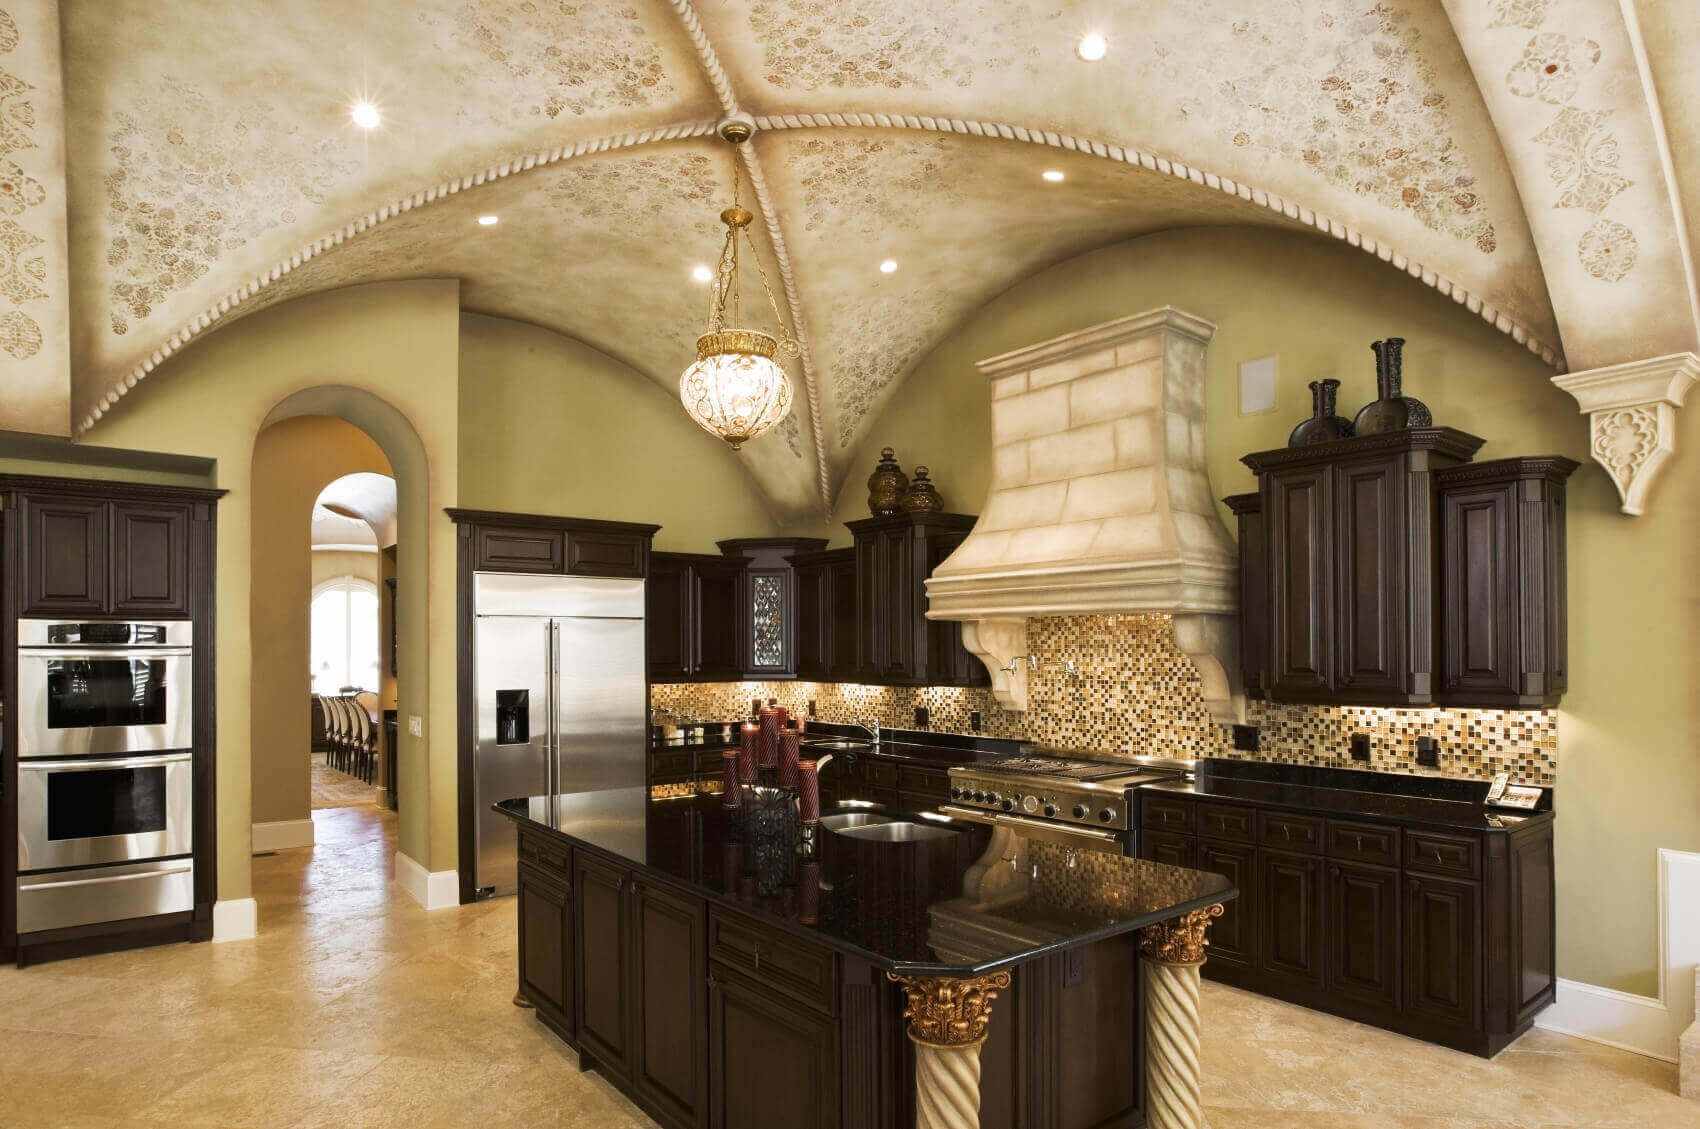 Uber Luxurious Kitchen Designs